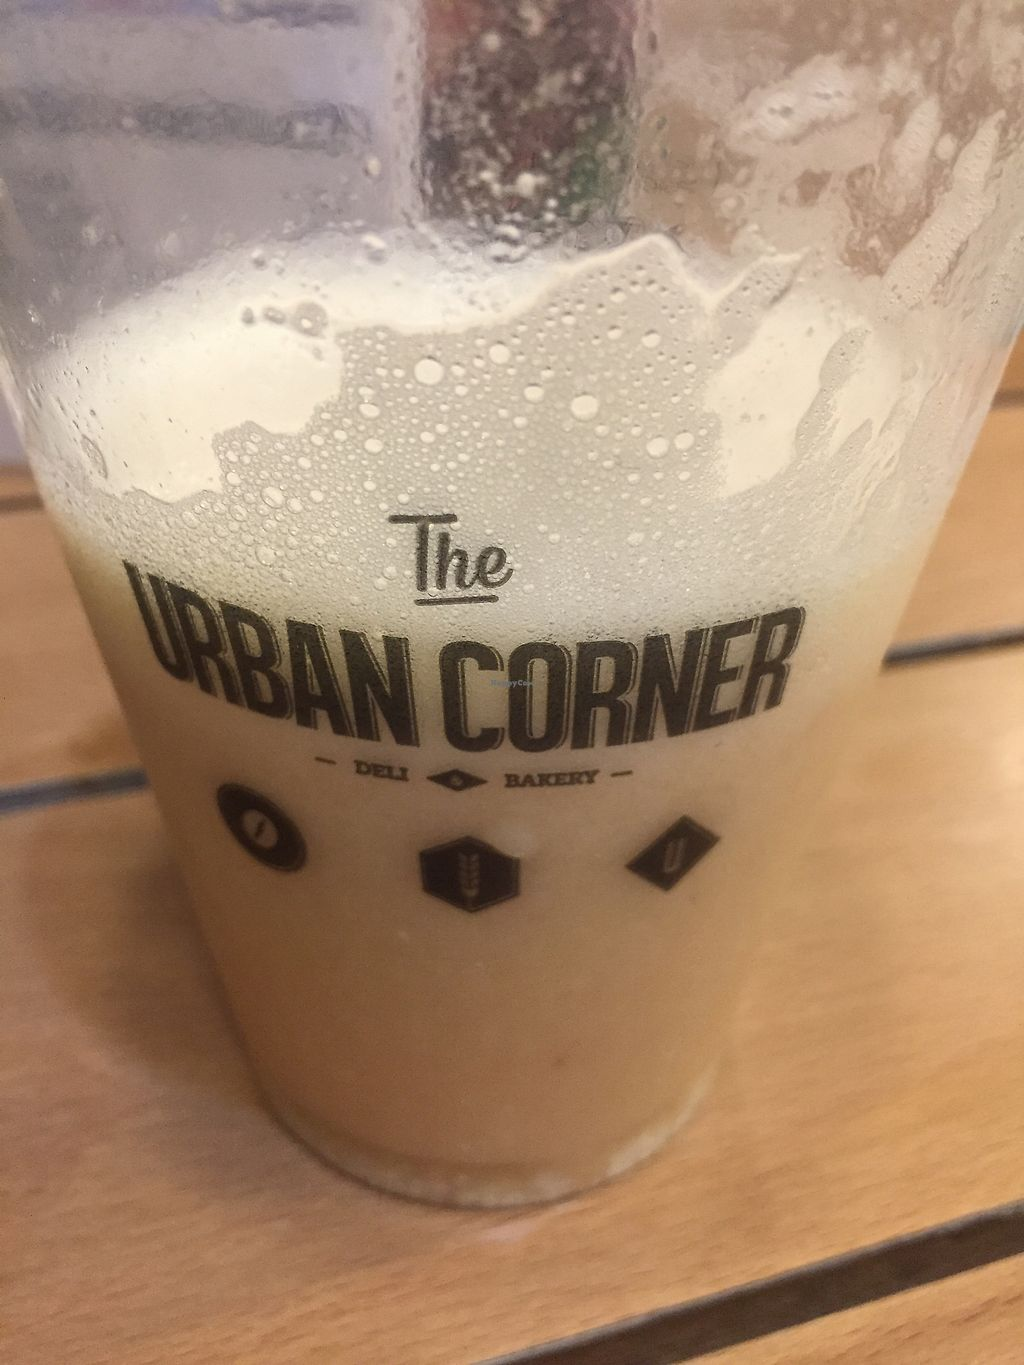 "Photo of The Urban Corner Manacar  by <a href=""/members/profile/LaylaLm"">LaylaLm</a> <br/>Smoothie  <br/> February 13, 2018  - <a href='/contact/abuse/image/105997/358614'>Report</a>"